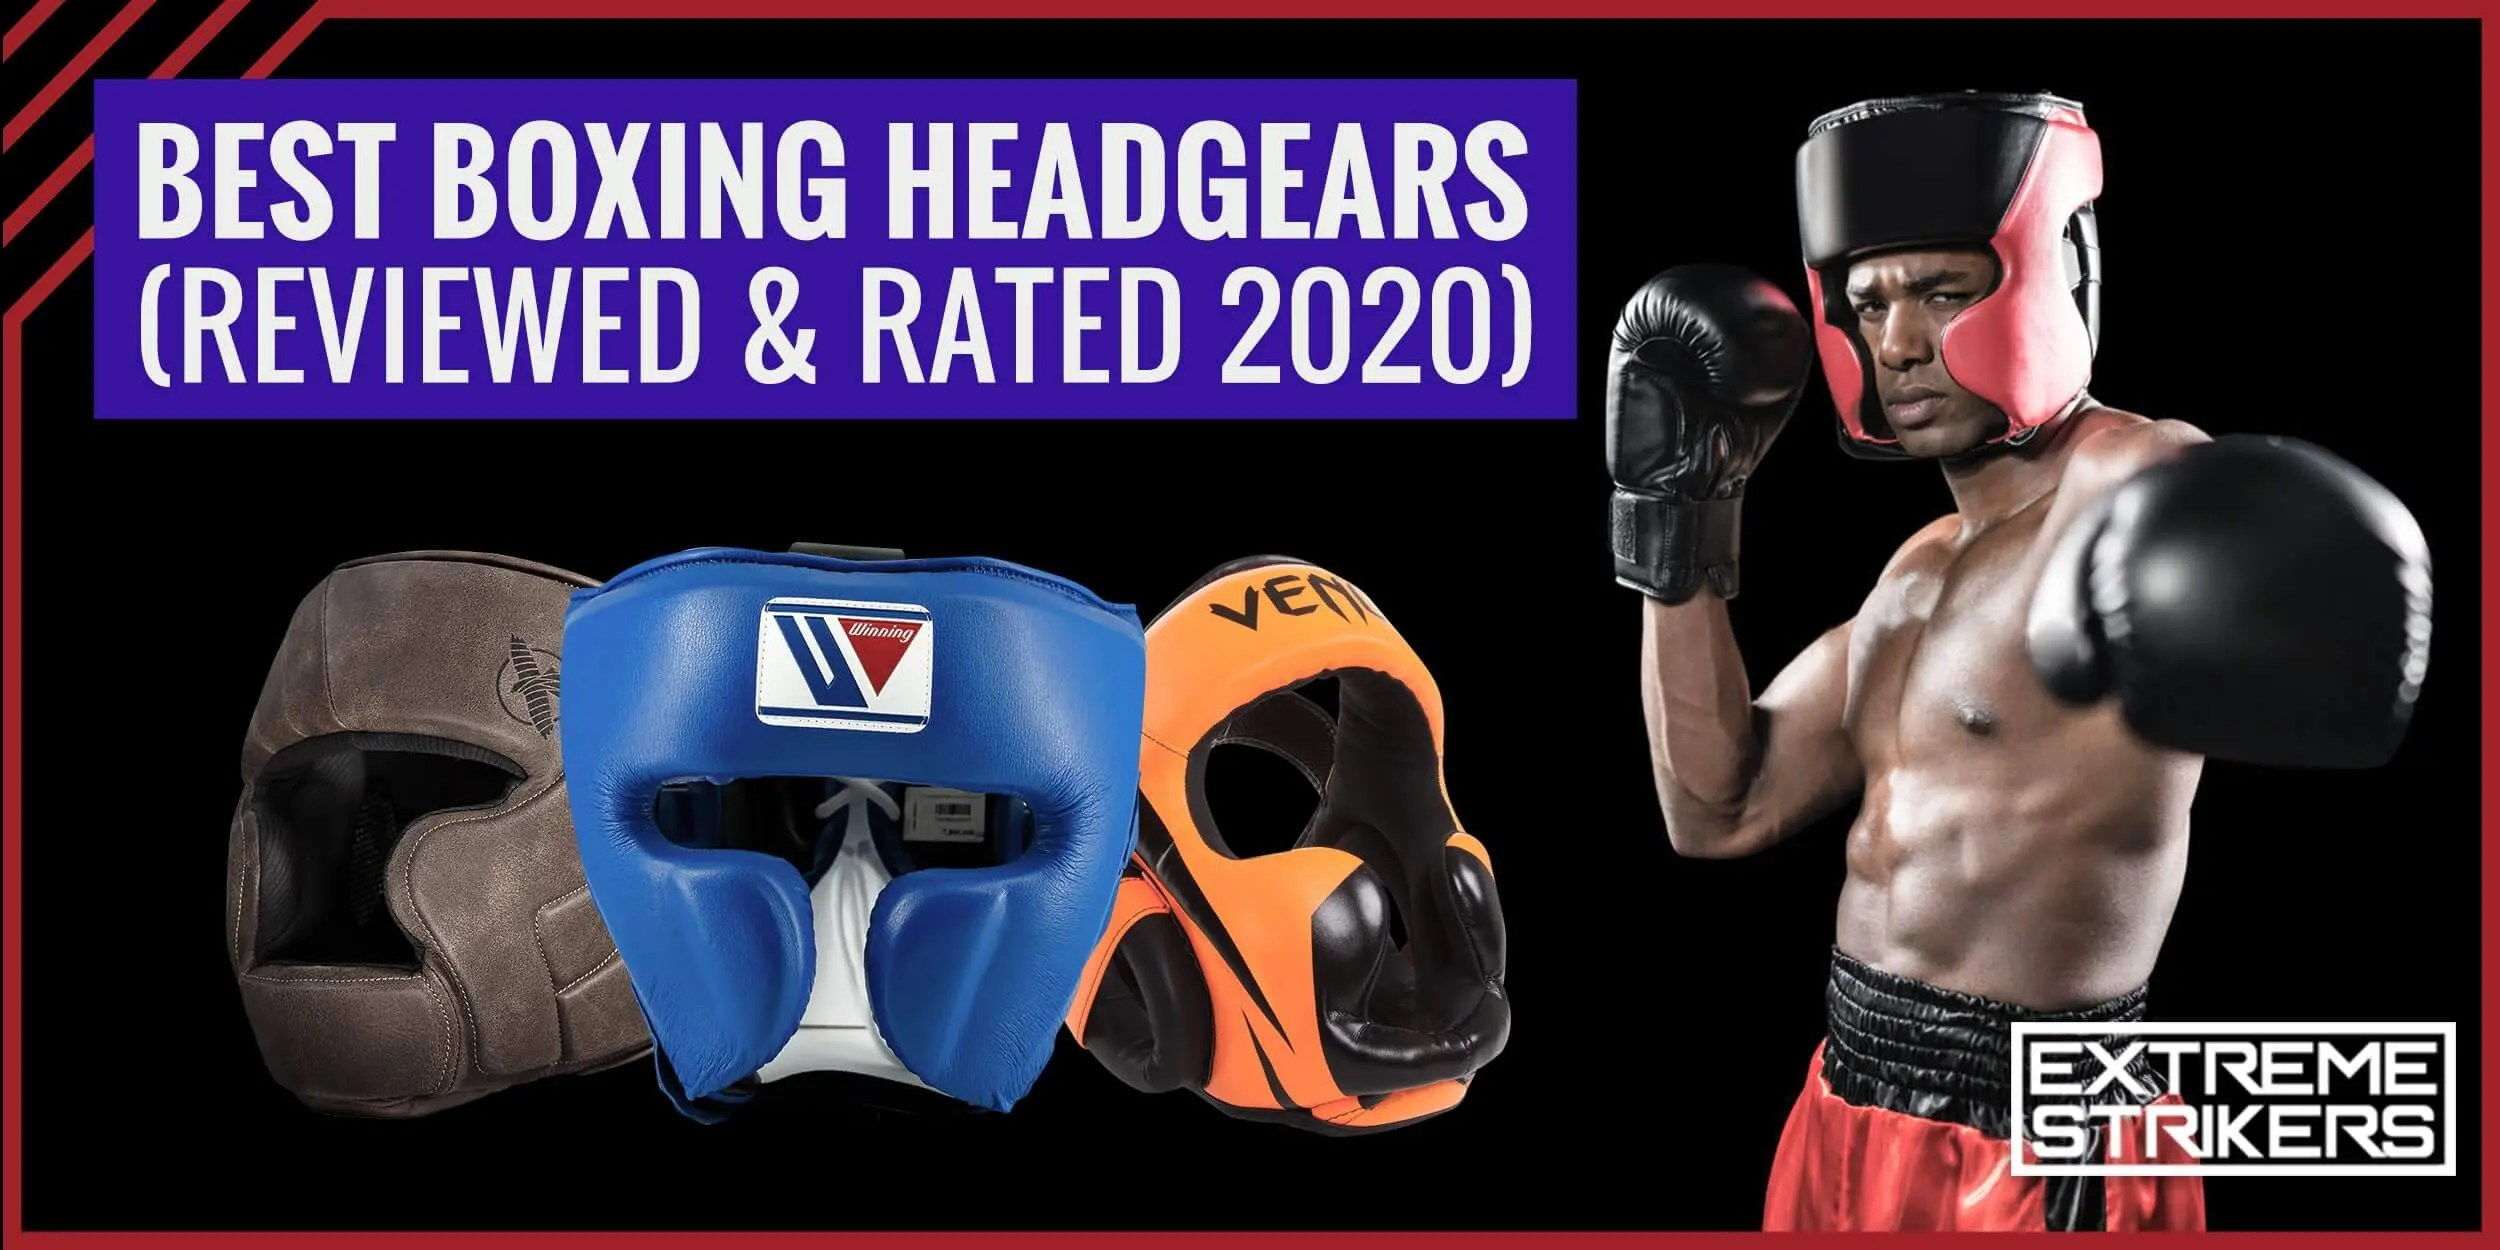 4 Sizes Black Boxing or MMA Protective Head Gear